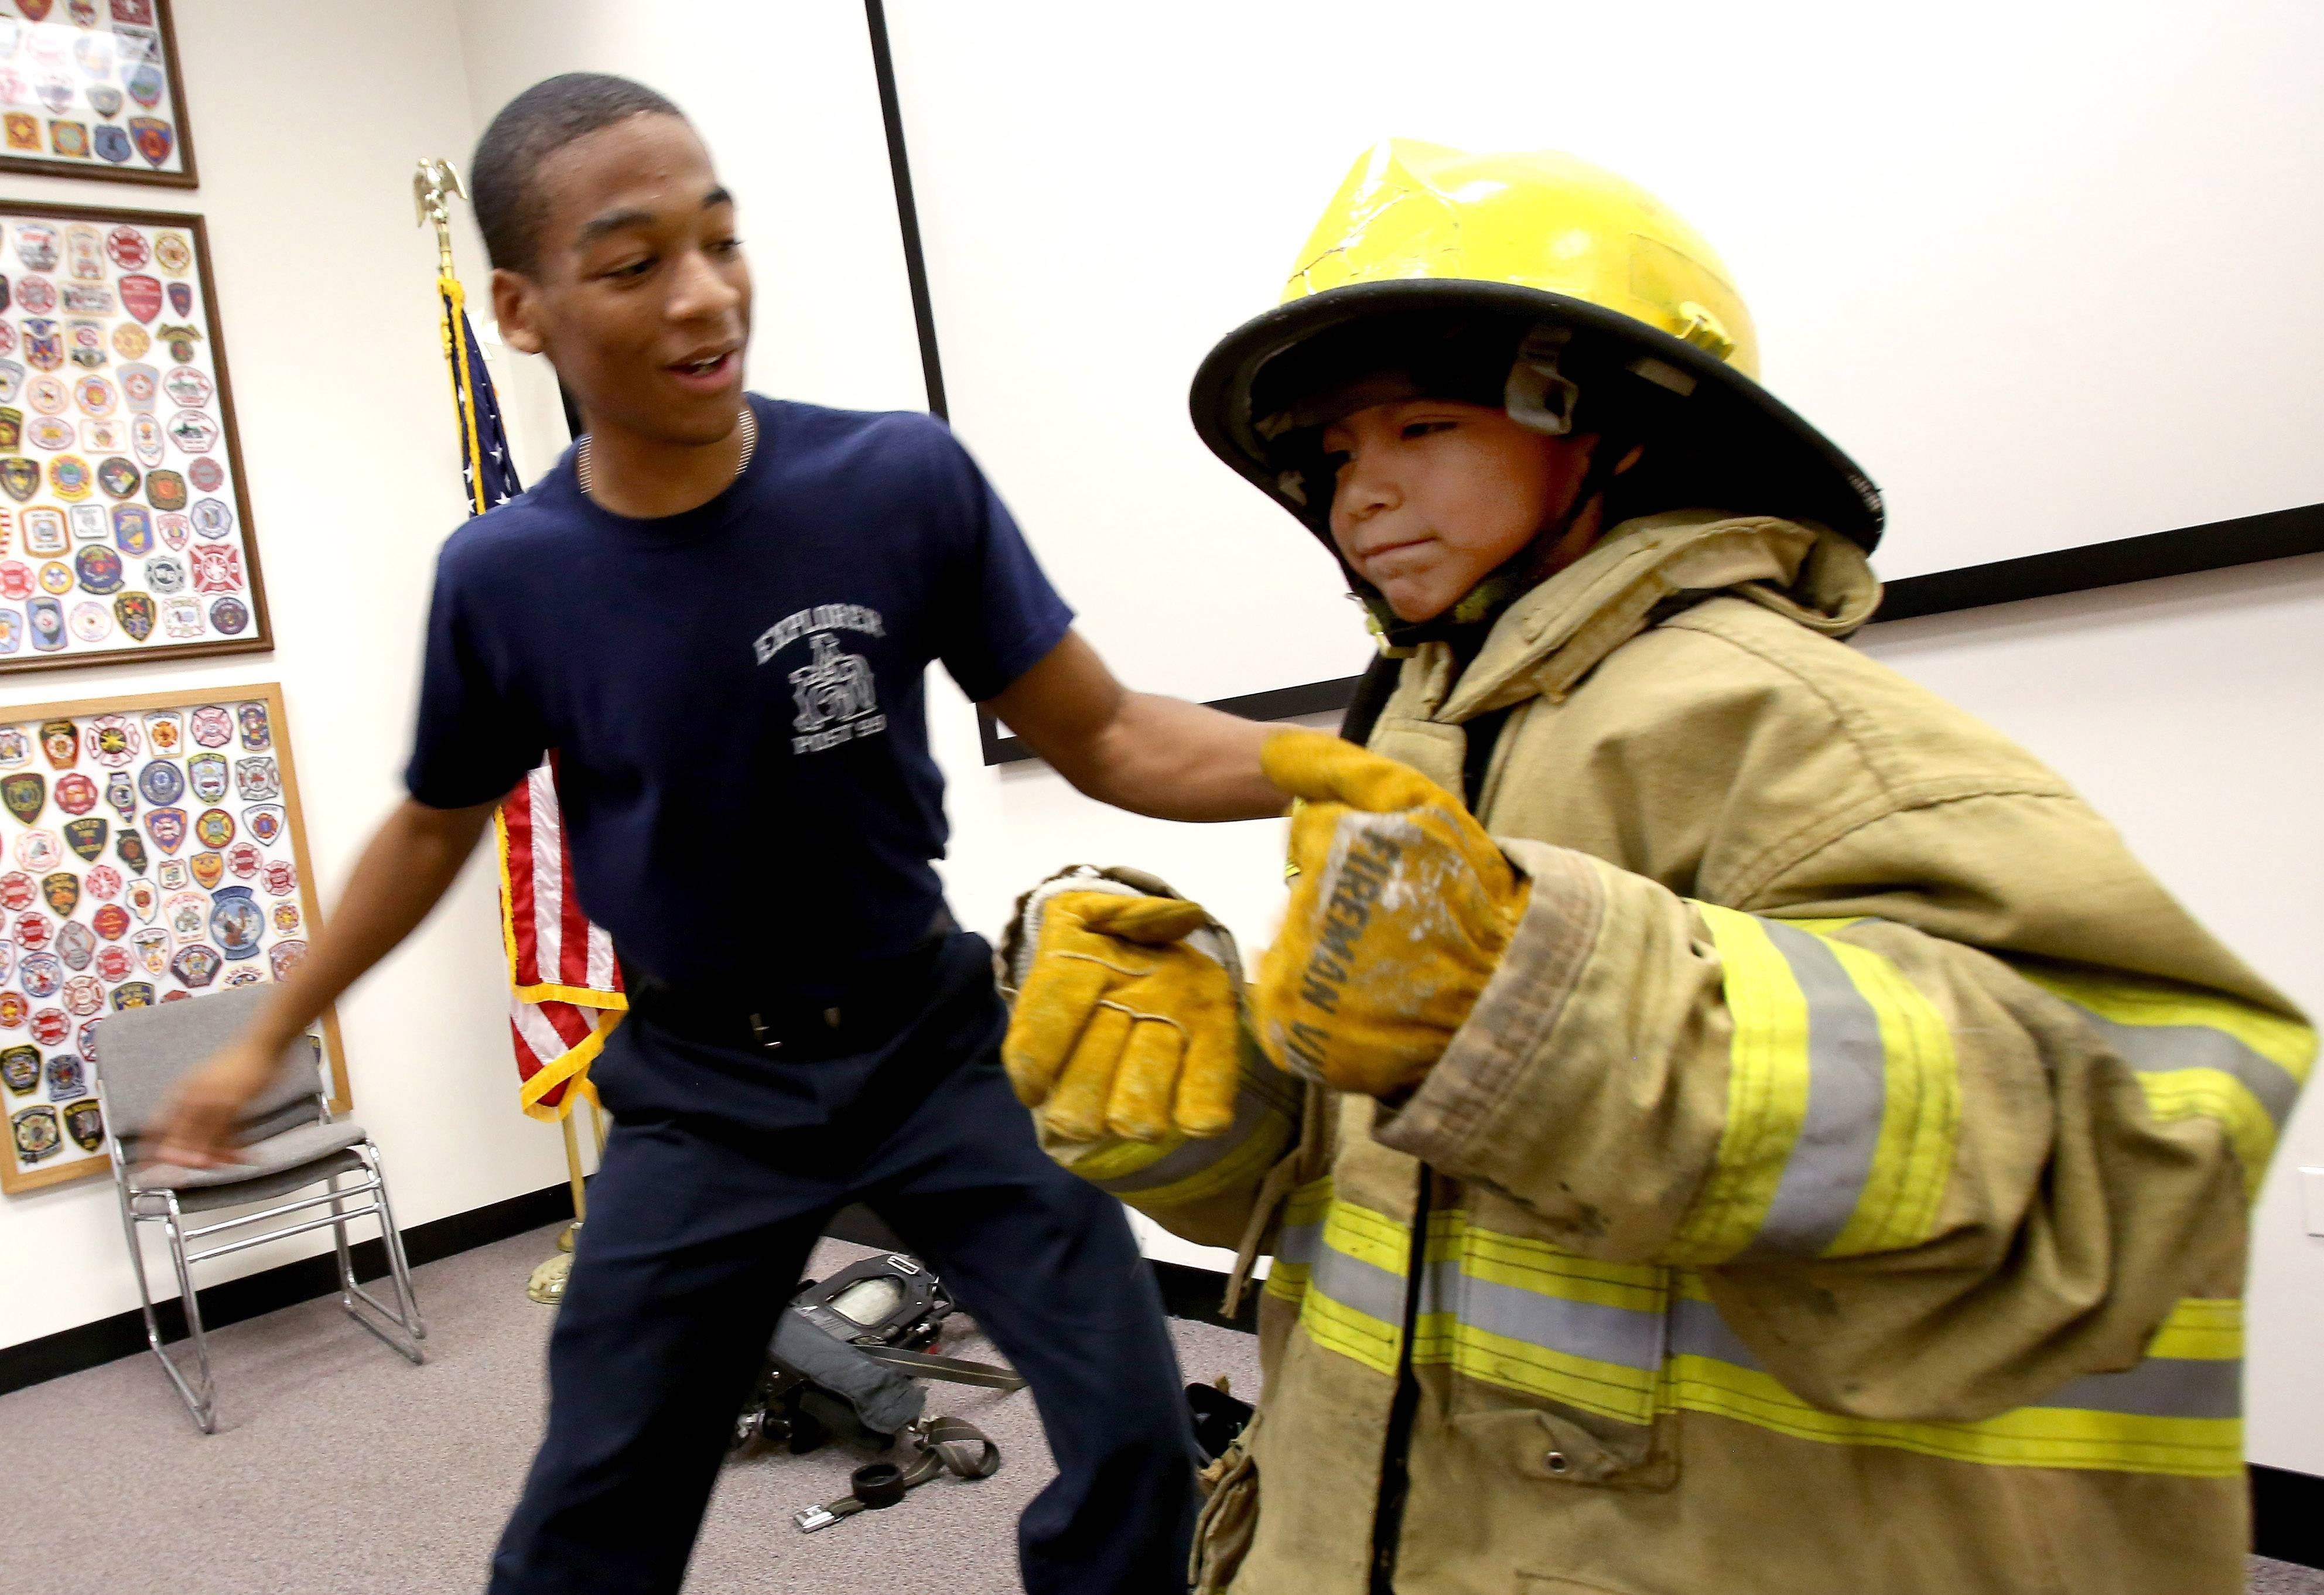 Chris Boykin, a cadet Explorer with Aurora Post 99, gets a look at 7-year-old Santiago Hernandez as he gets suited up in firefighter's gear during the Youth Firefighter Challenge summer camp.